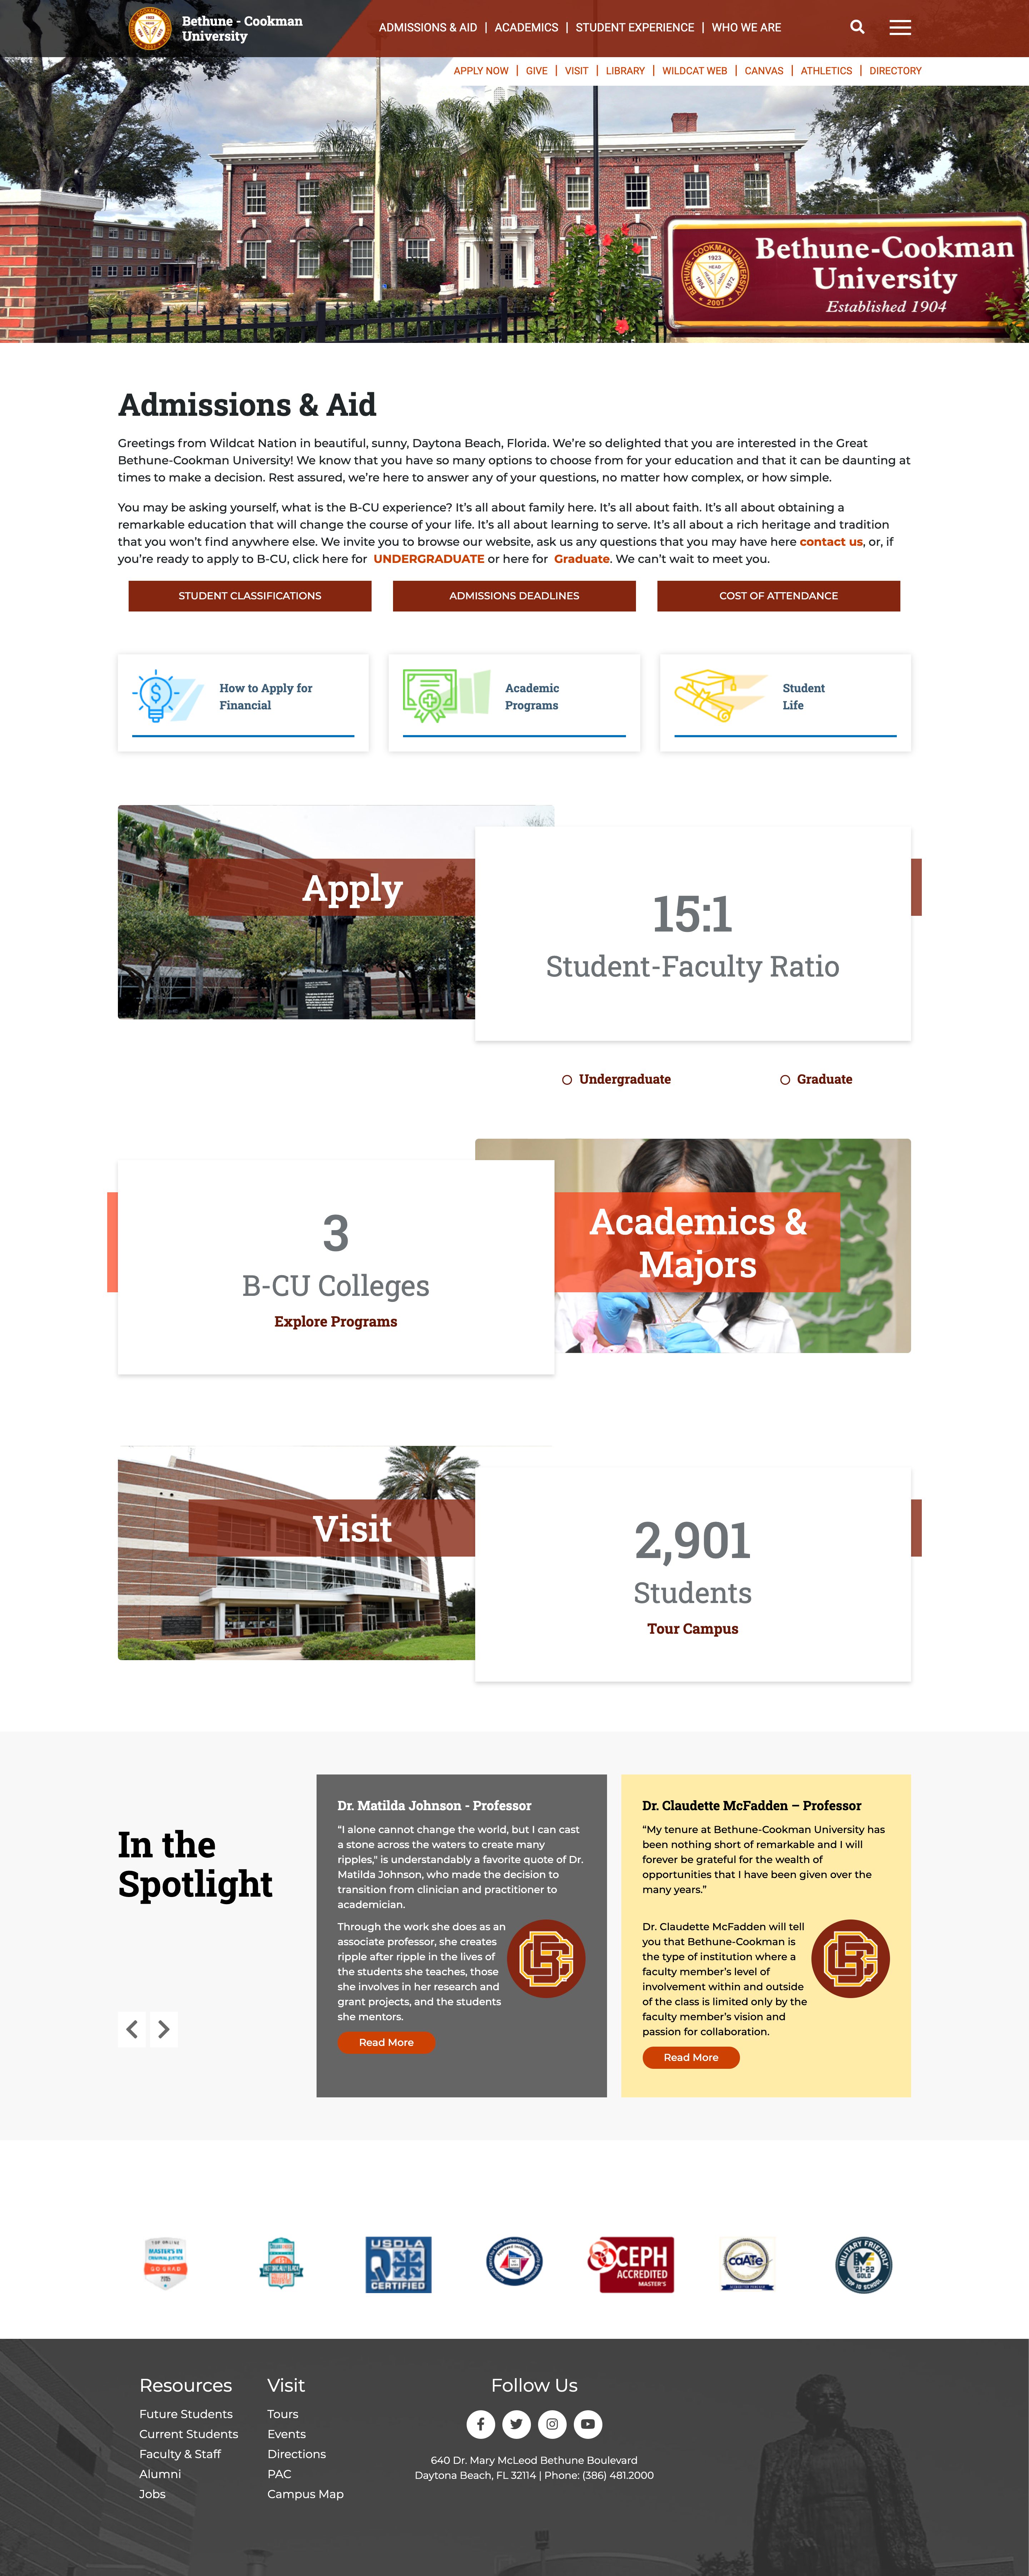 Bethune Cookman's interior page